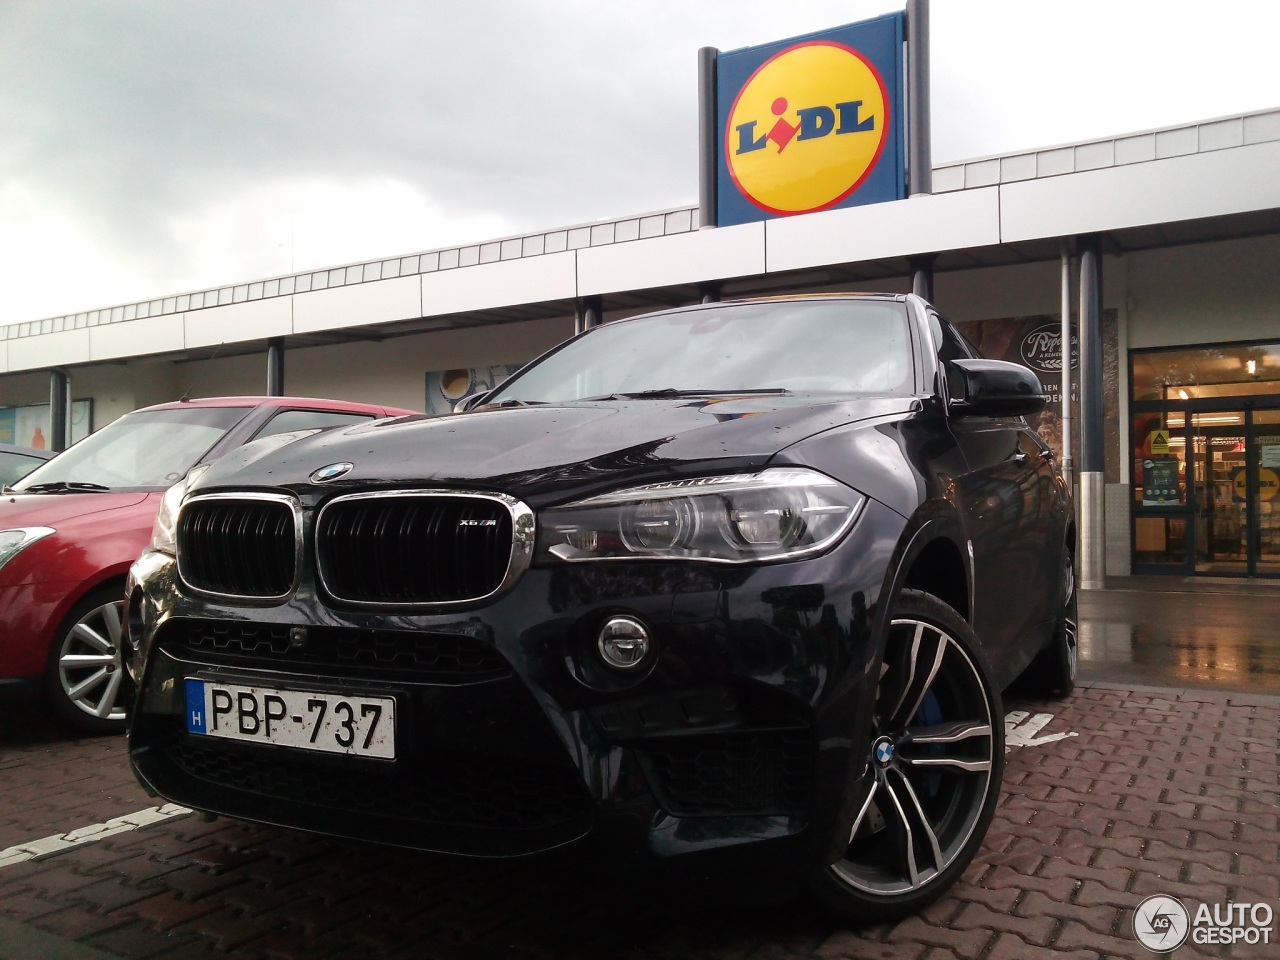 BMW X6 M II (F86) 2014 - now SUV 5 door #1